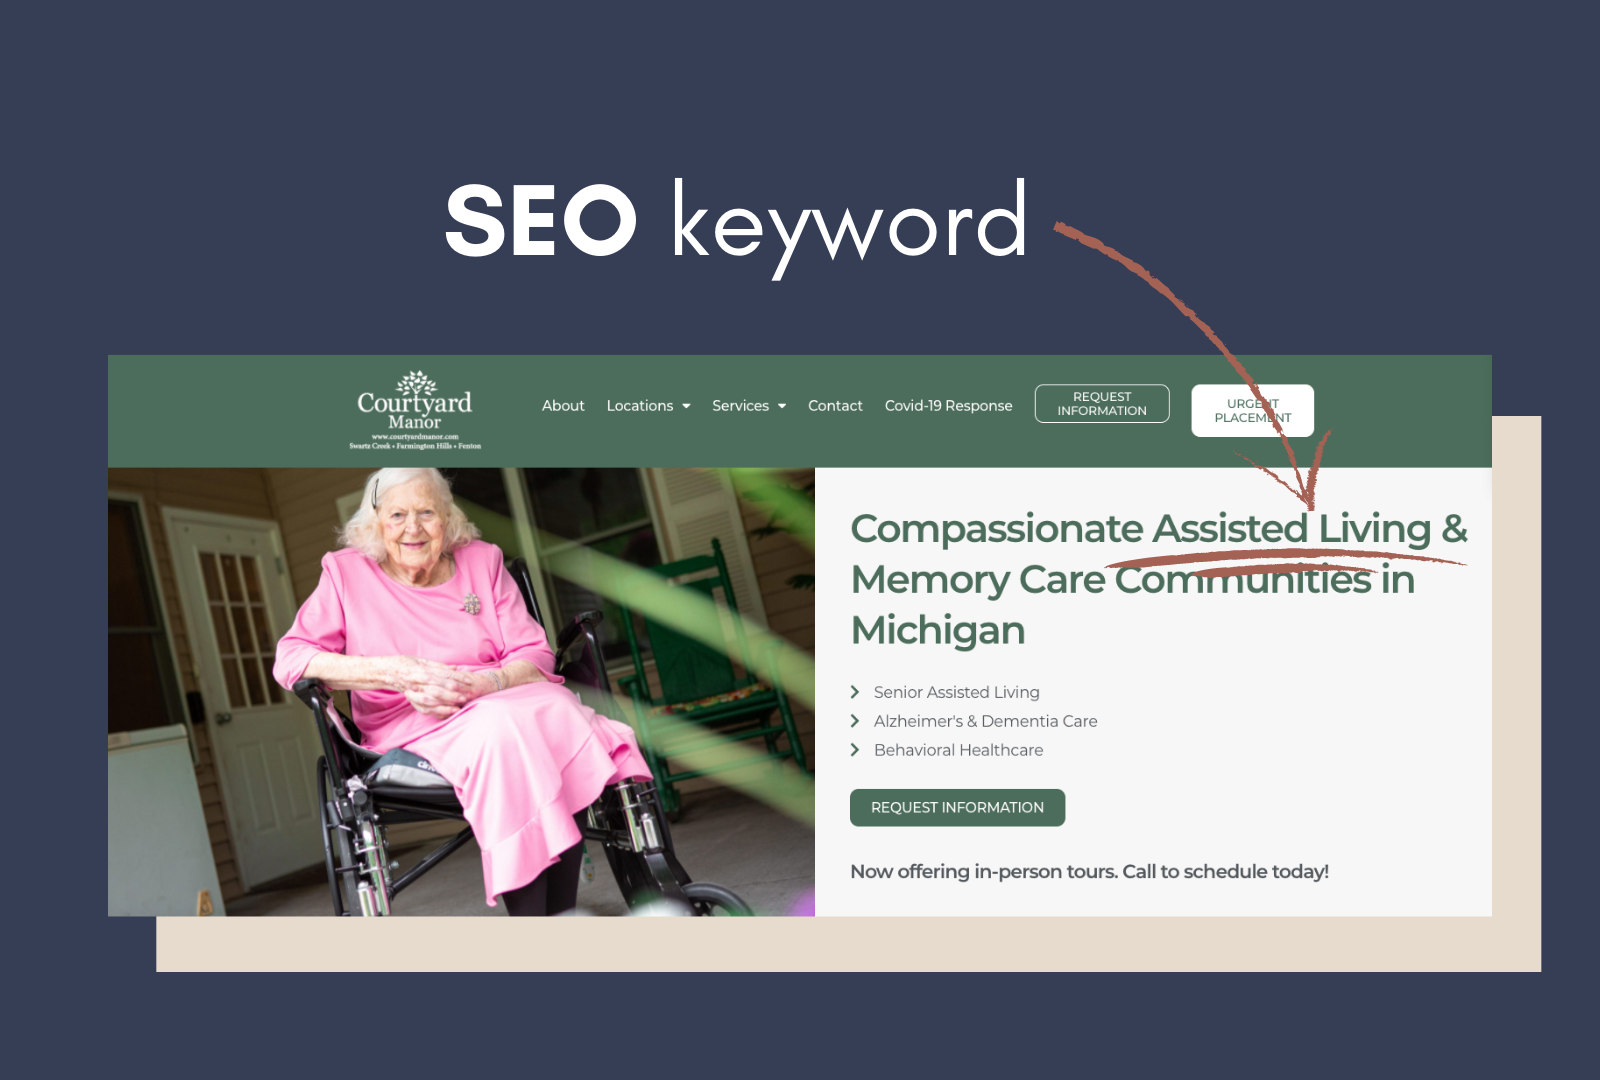 Reference of SEO on Courtyard Manor website